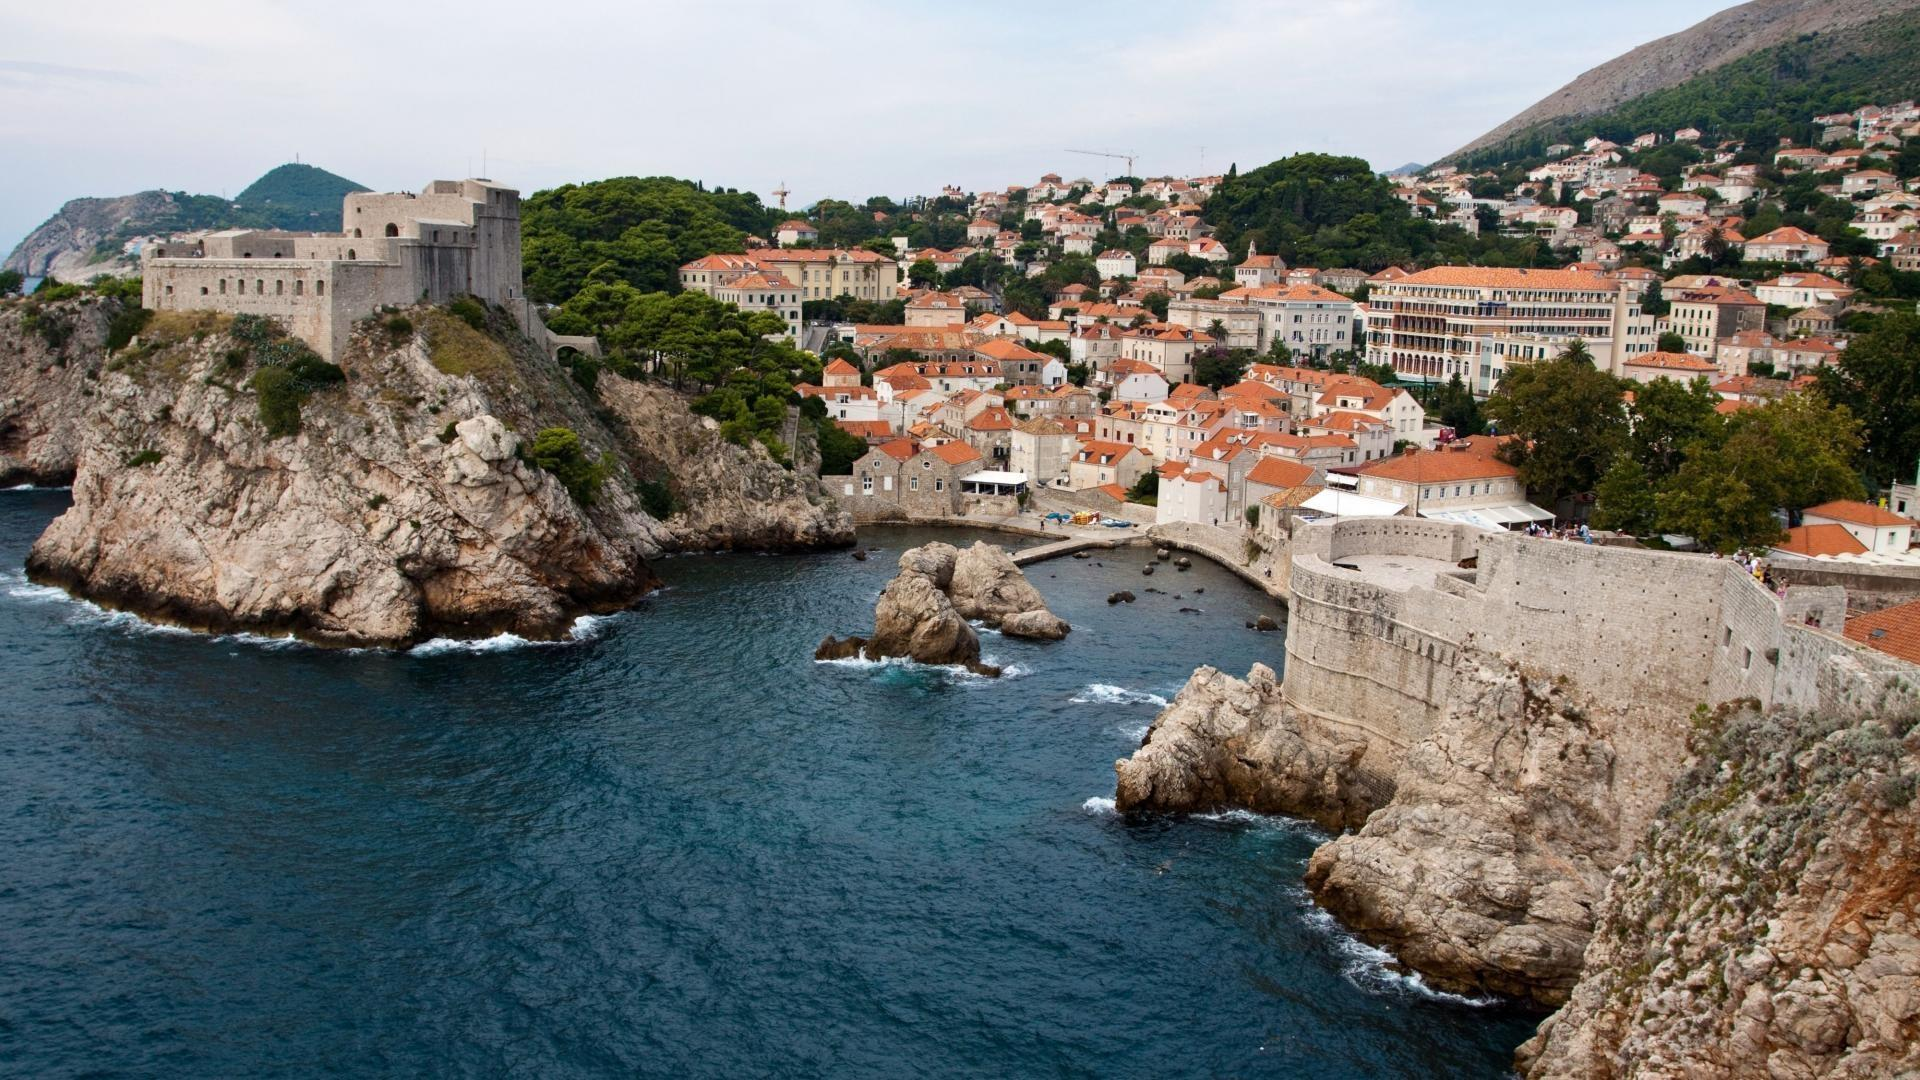 Dubrovnik wallpapers HD quality